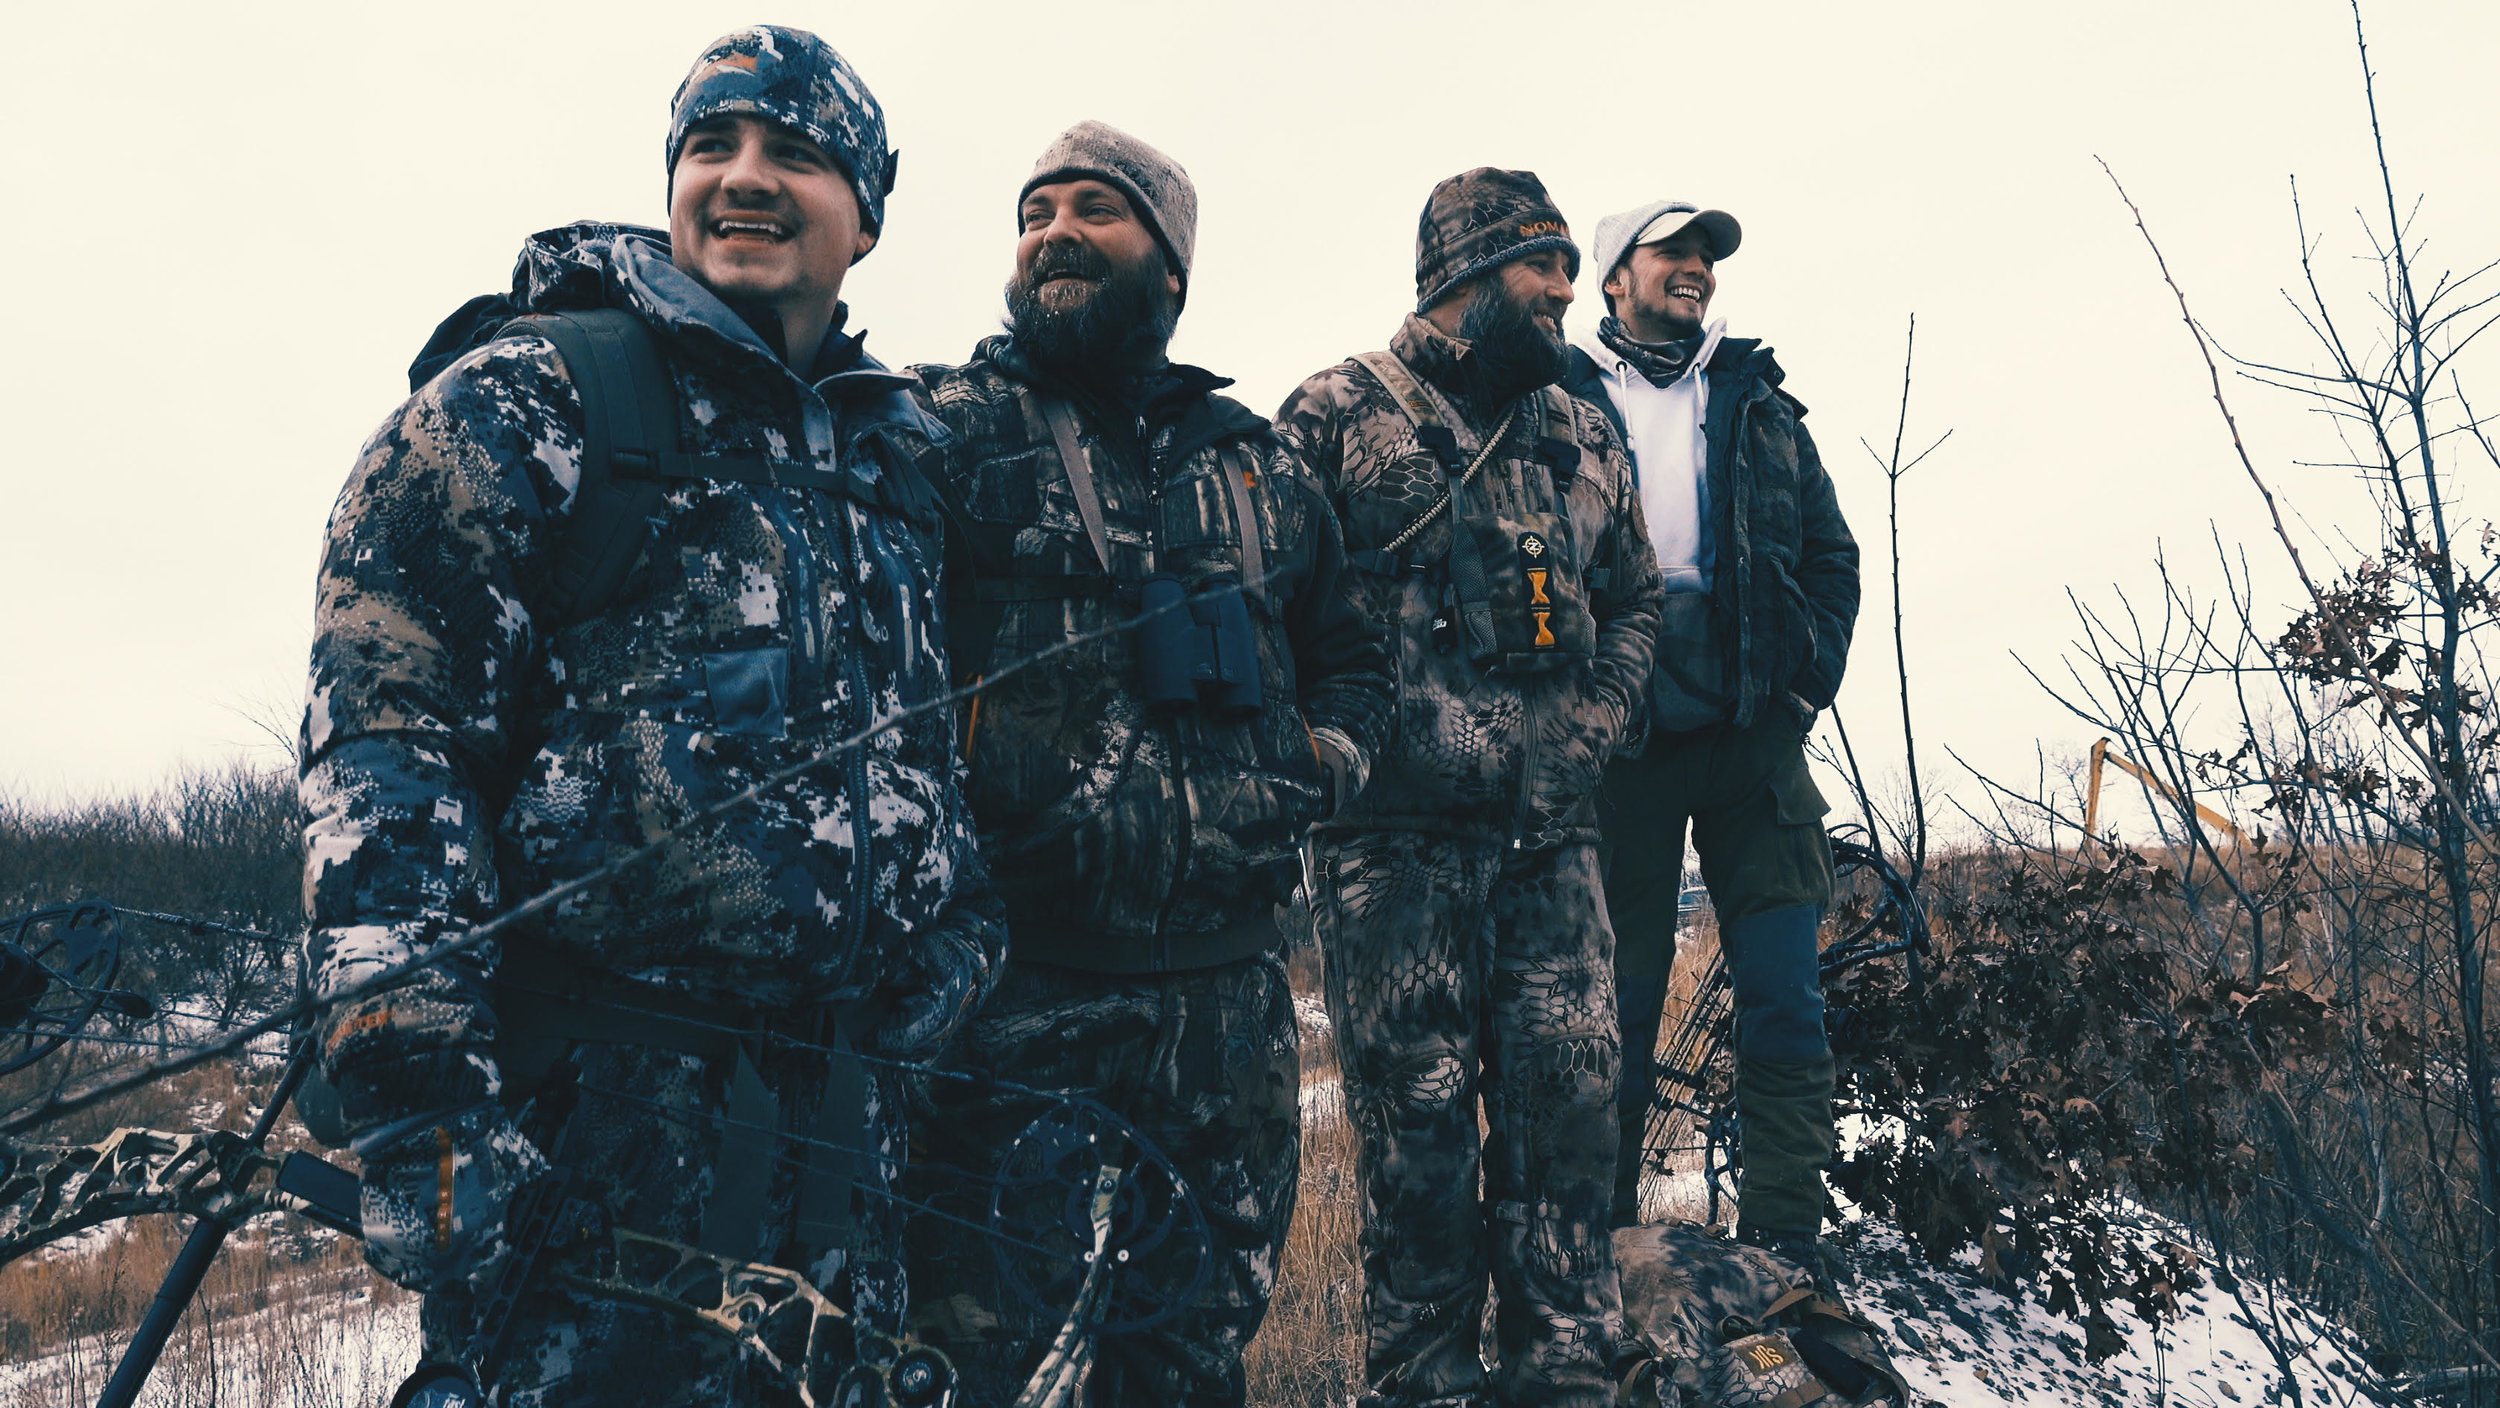 Photo: The Untamed (In Order: Kirk, Josh, Jay, and Trace).